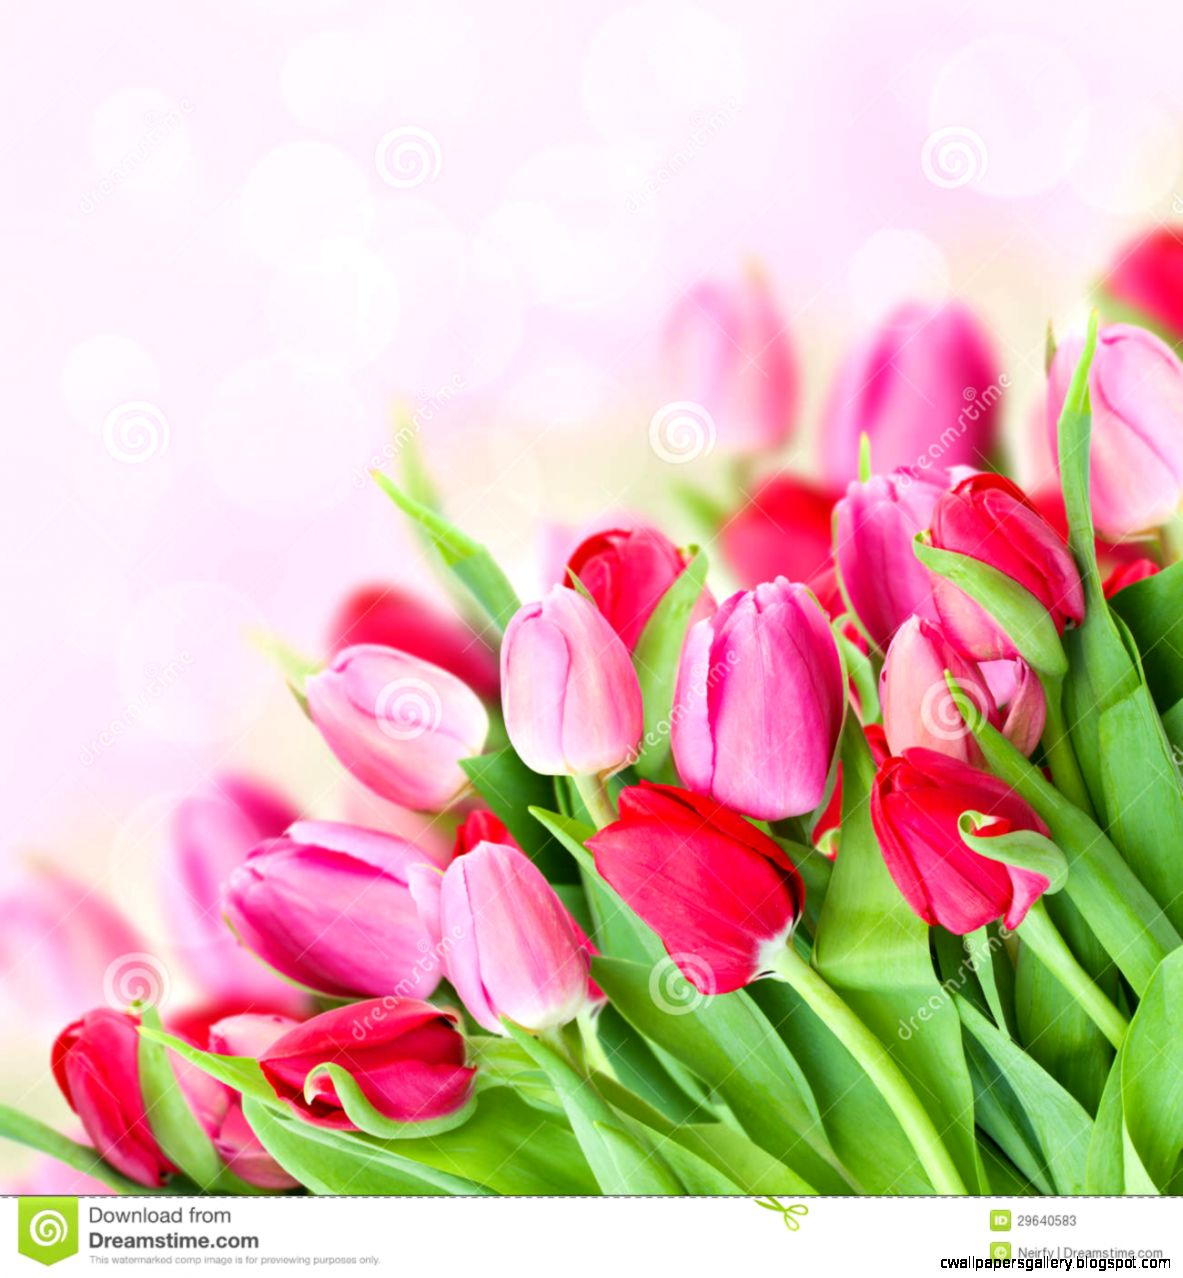 Spring Pink Tulips Bouquet Stock Photos   Image 29640583